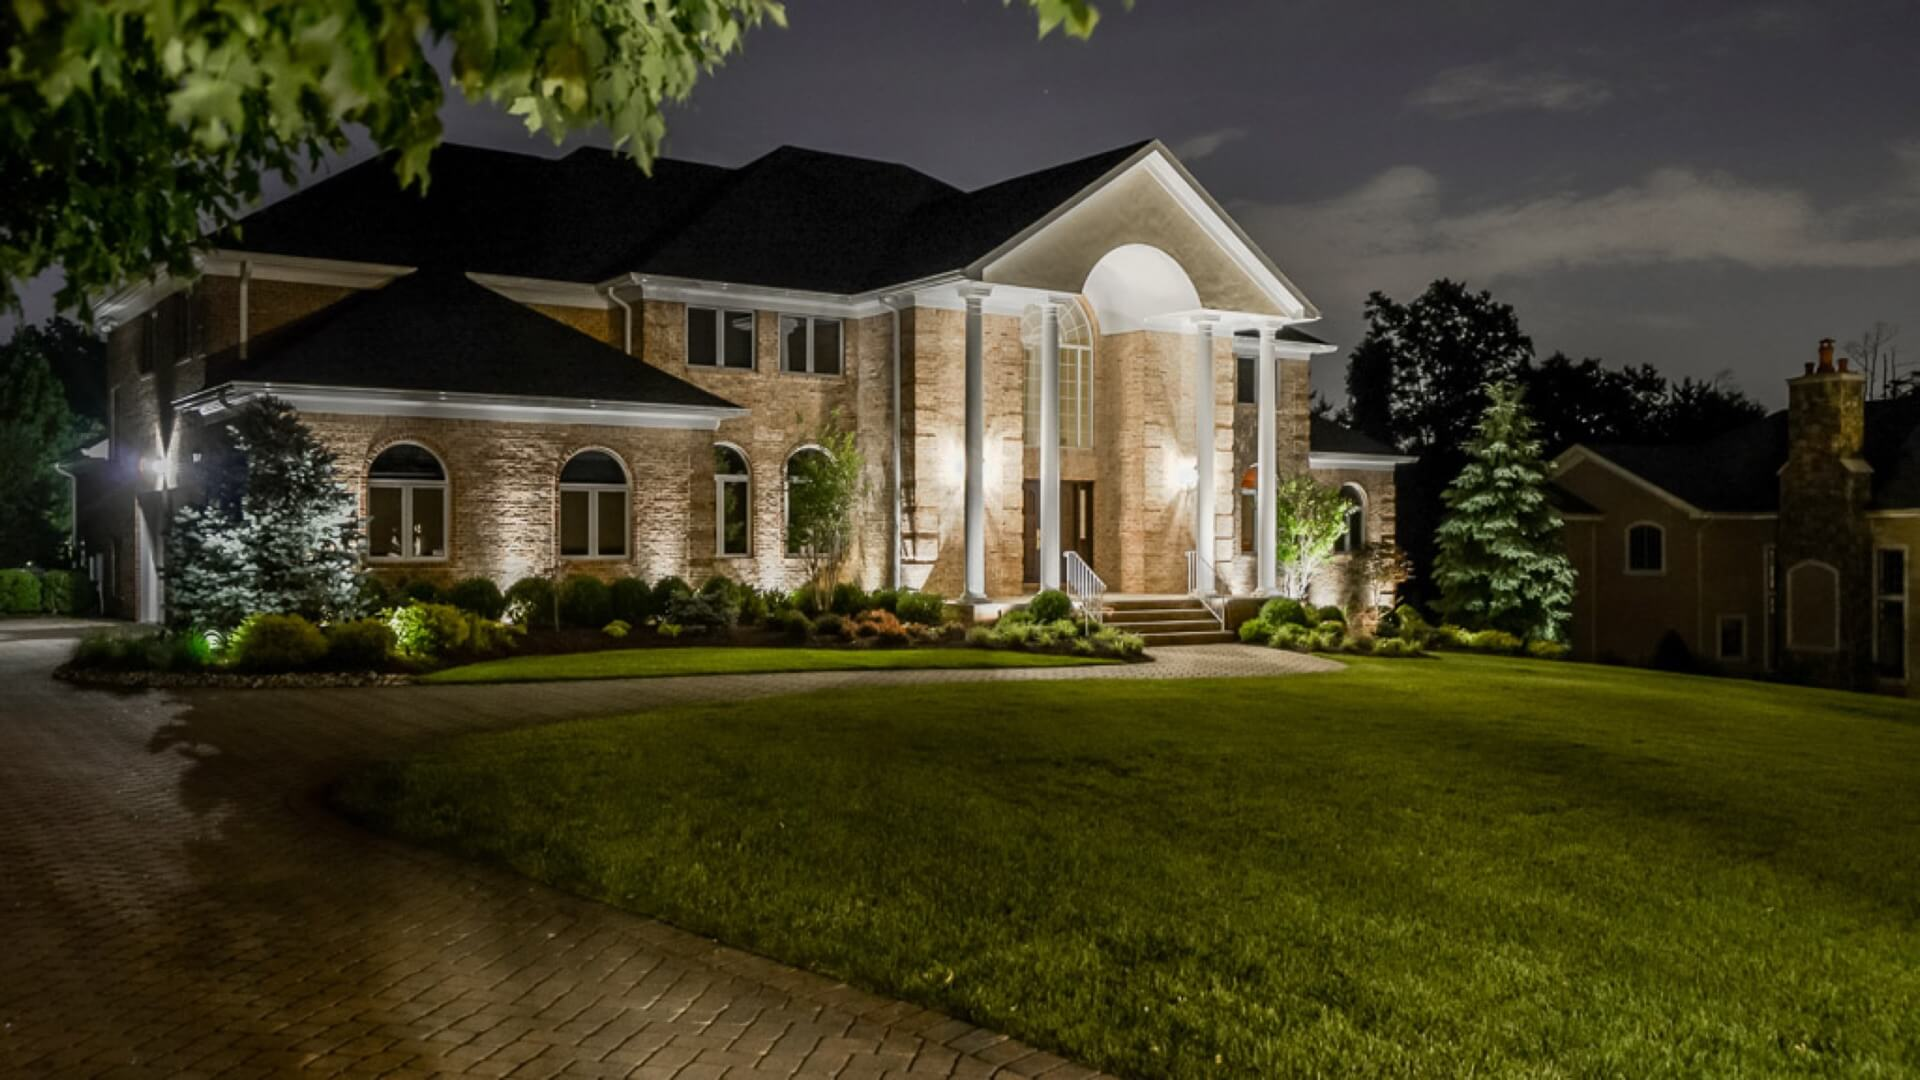 Low Voltage Outdoor Lighting on Home in N Caldwell NJ